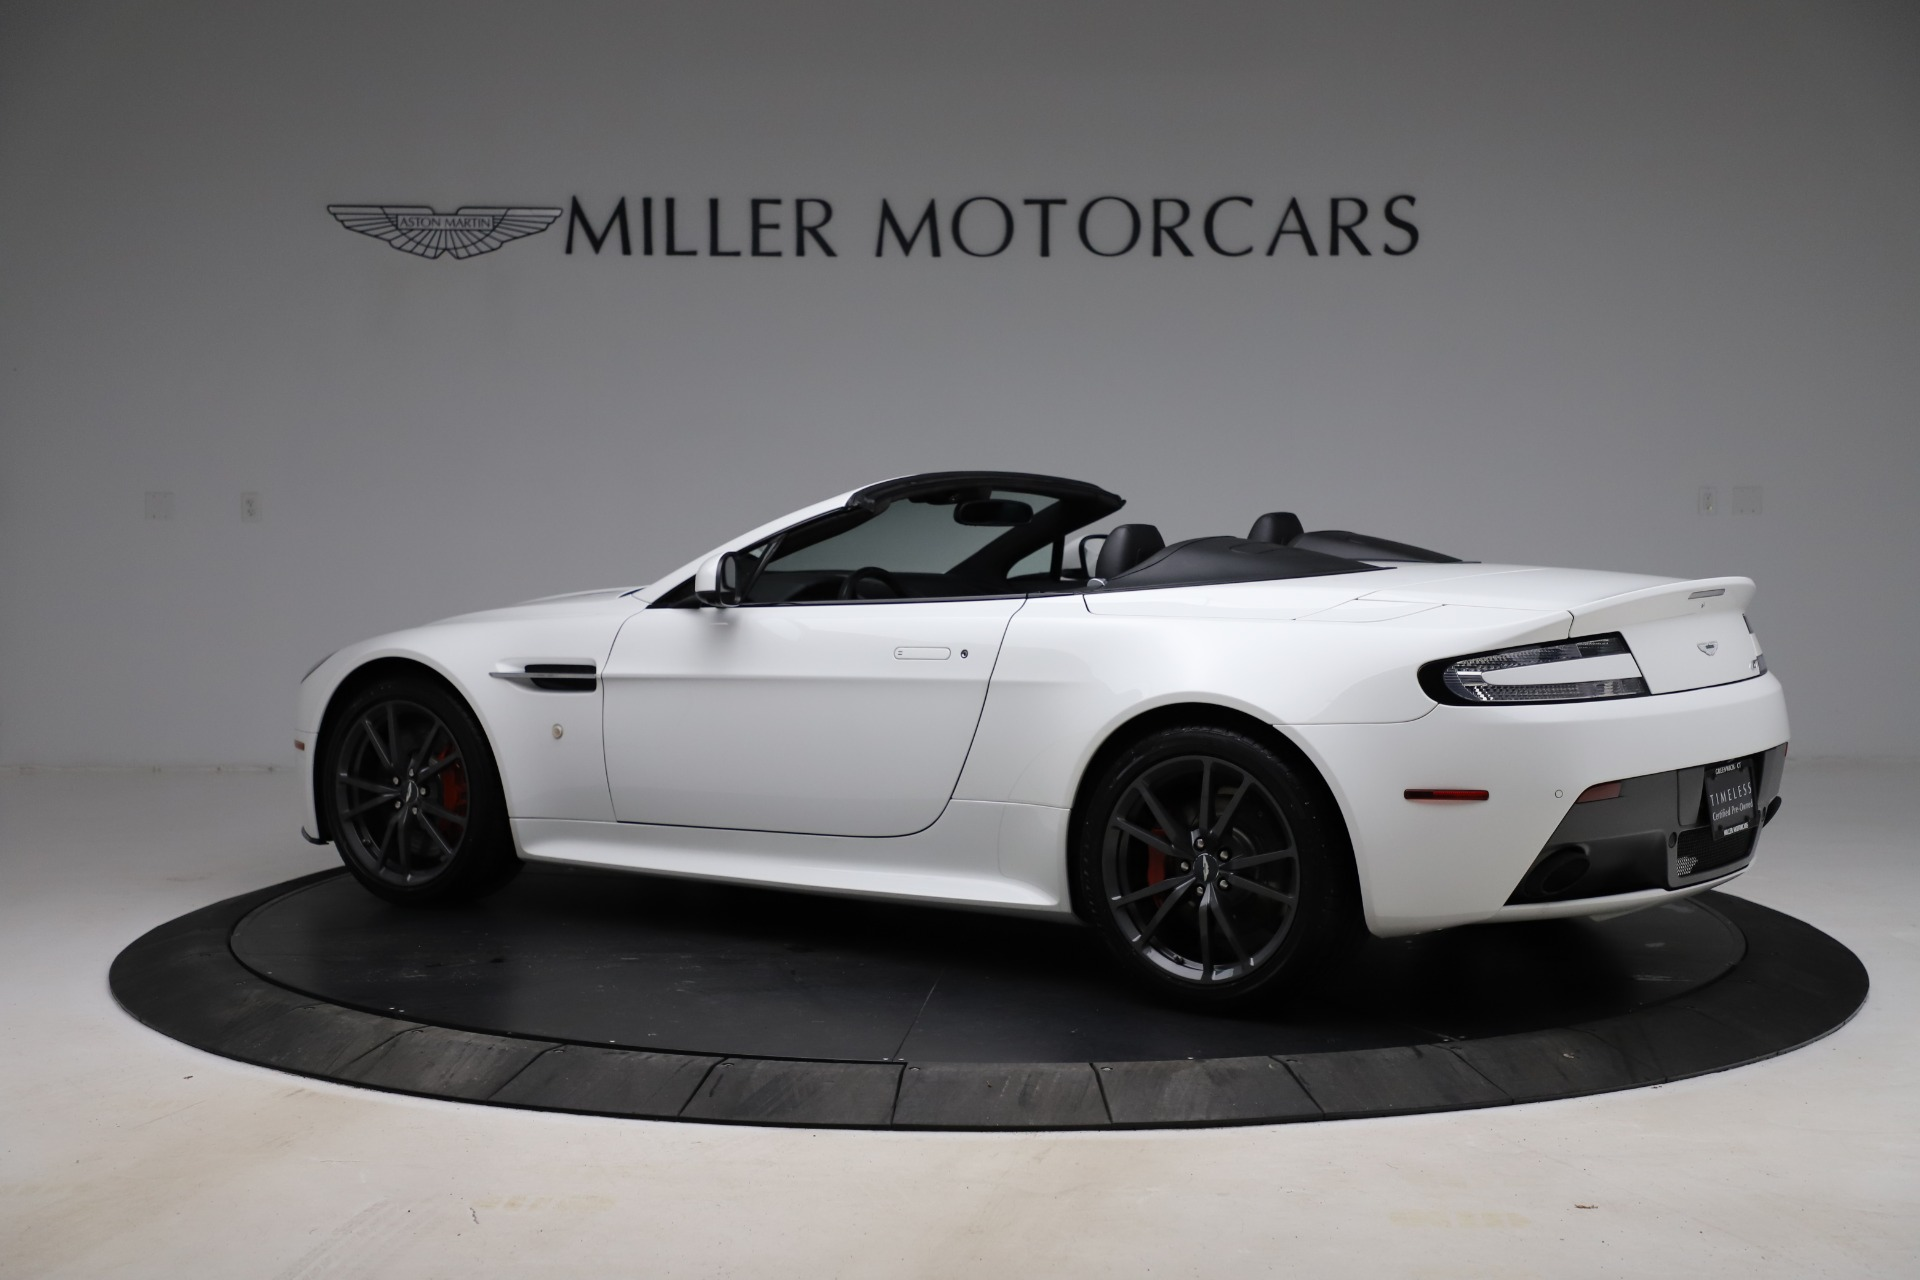 New 2015 Aston Martin Vantage GT GT Roadster For Sale In Westport, CT 93_p3